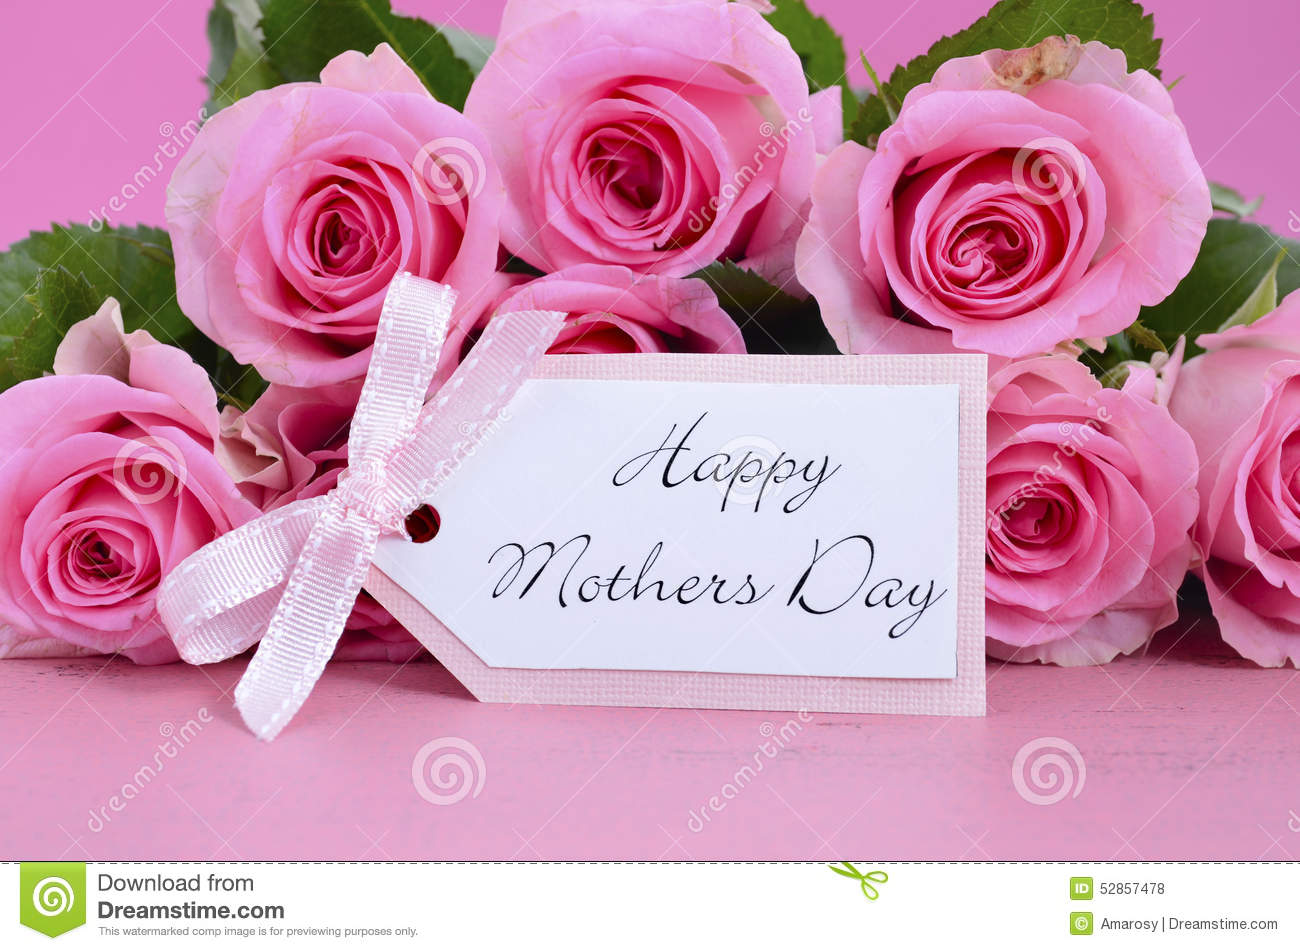 Happy Mothers Day Pink Roses Background Stock Photo